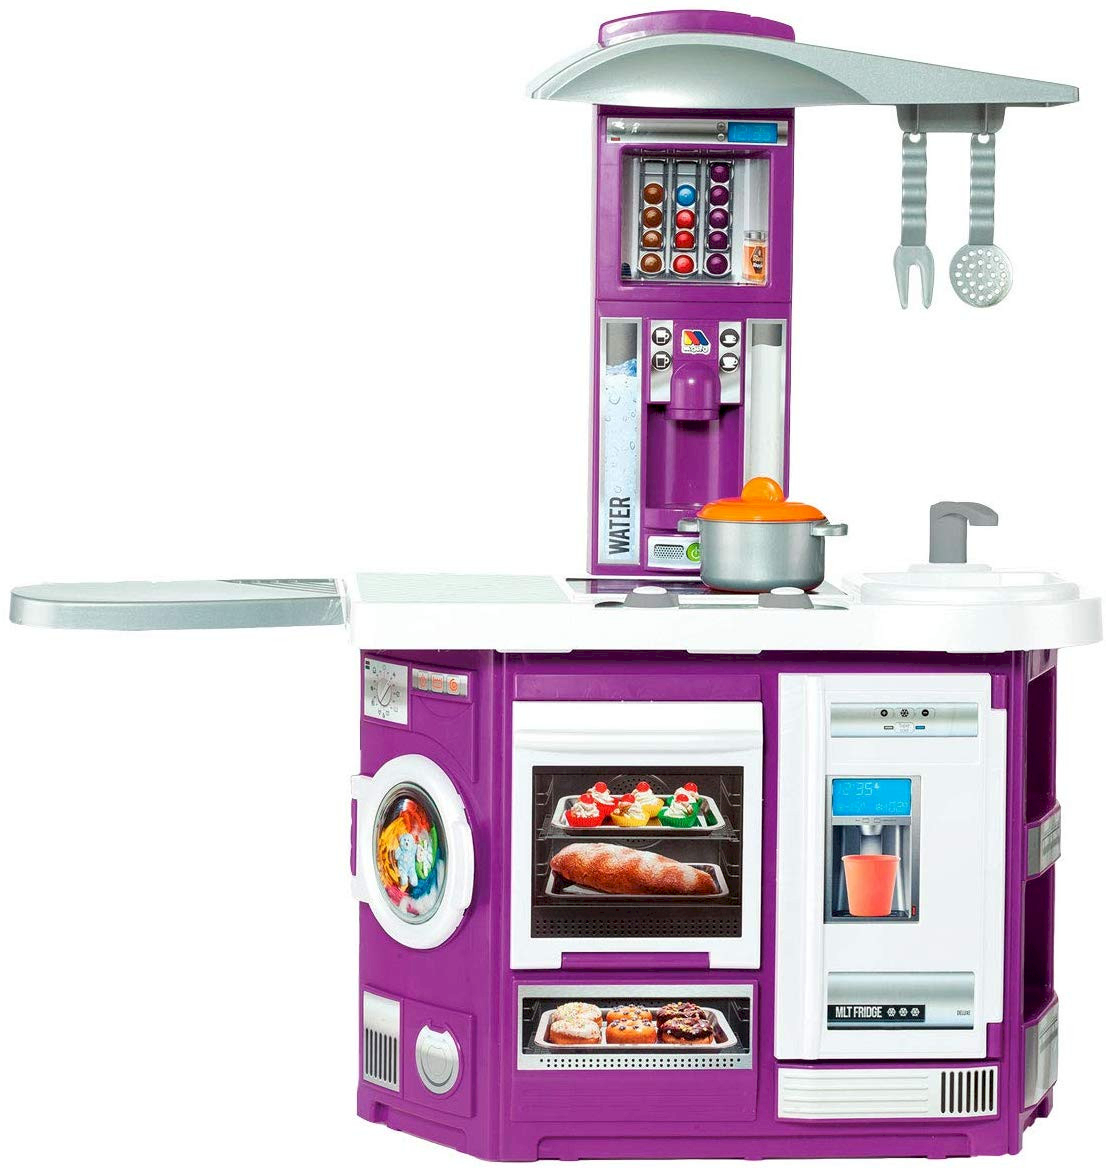 Cuisine Cook'n Play New Edition